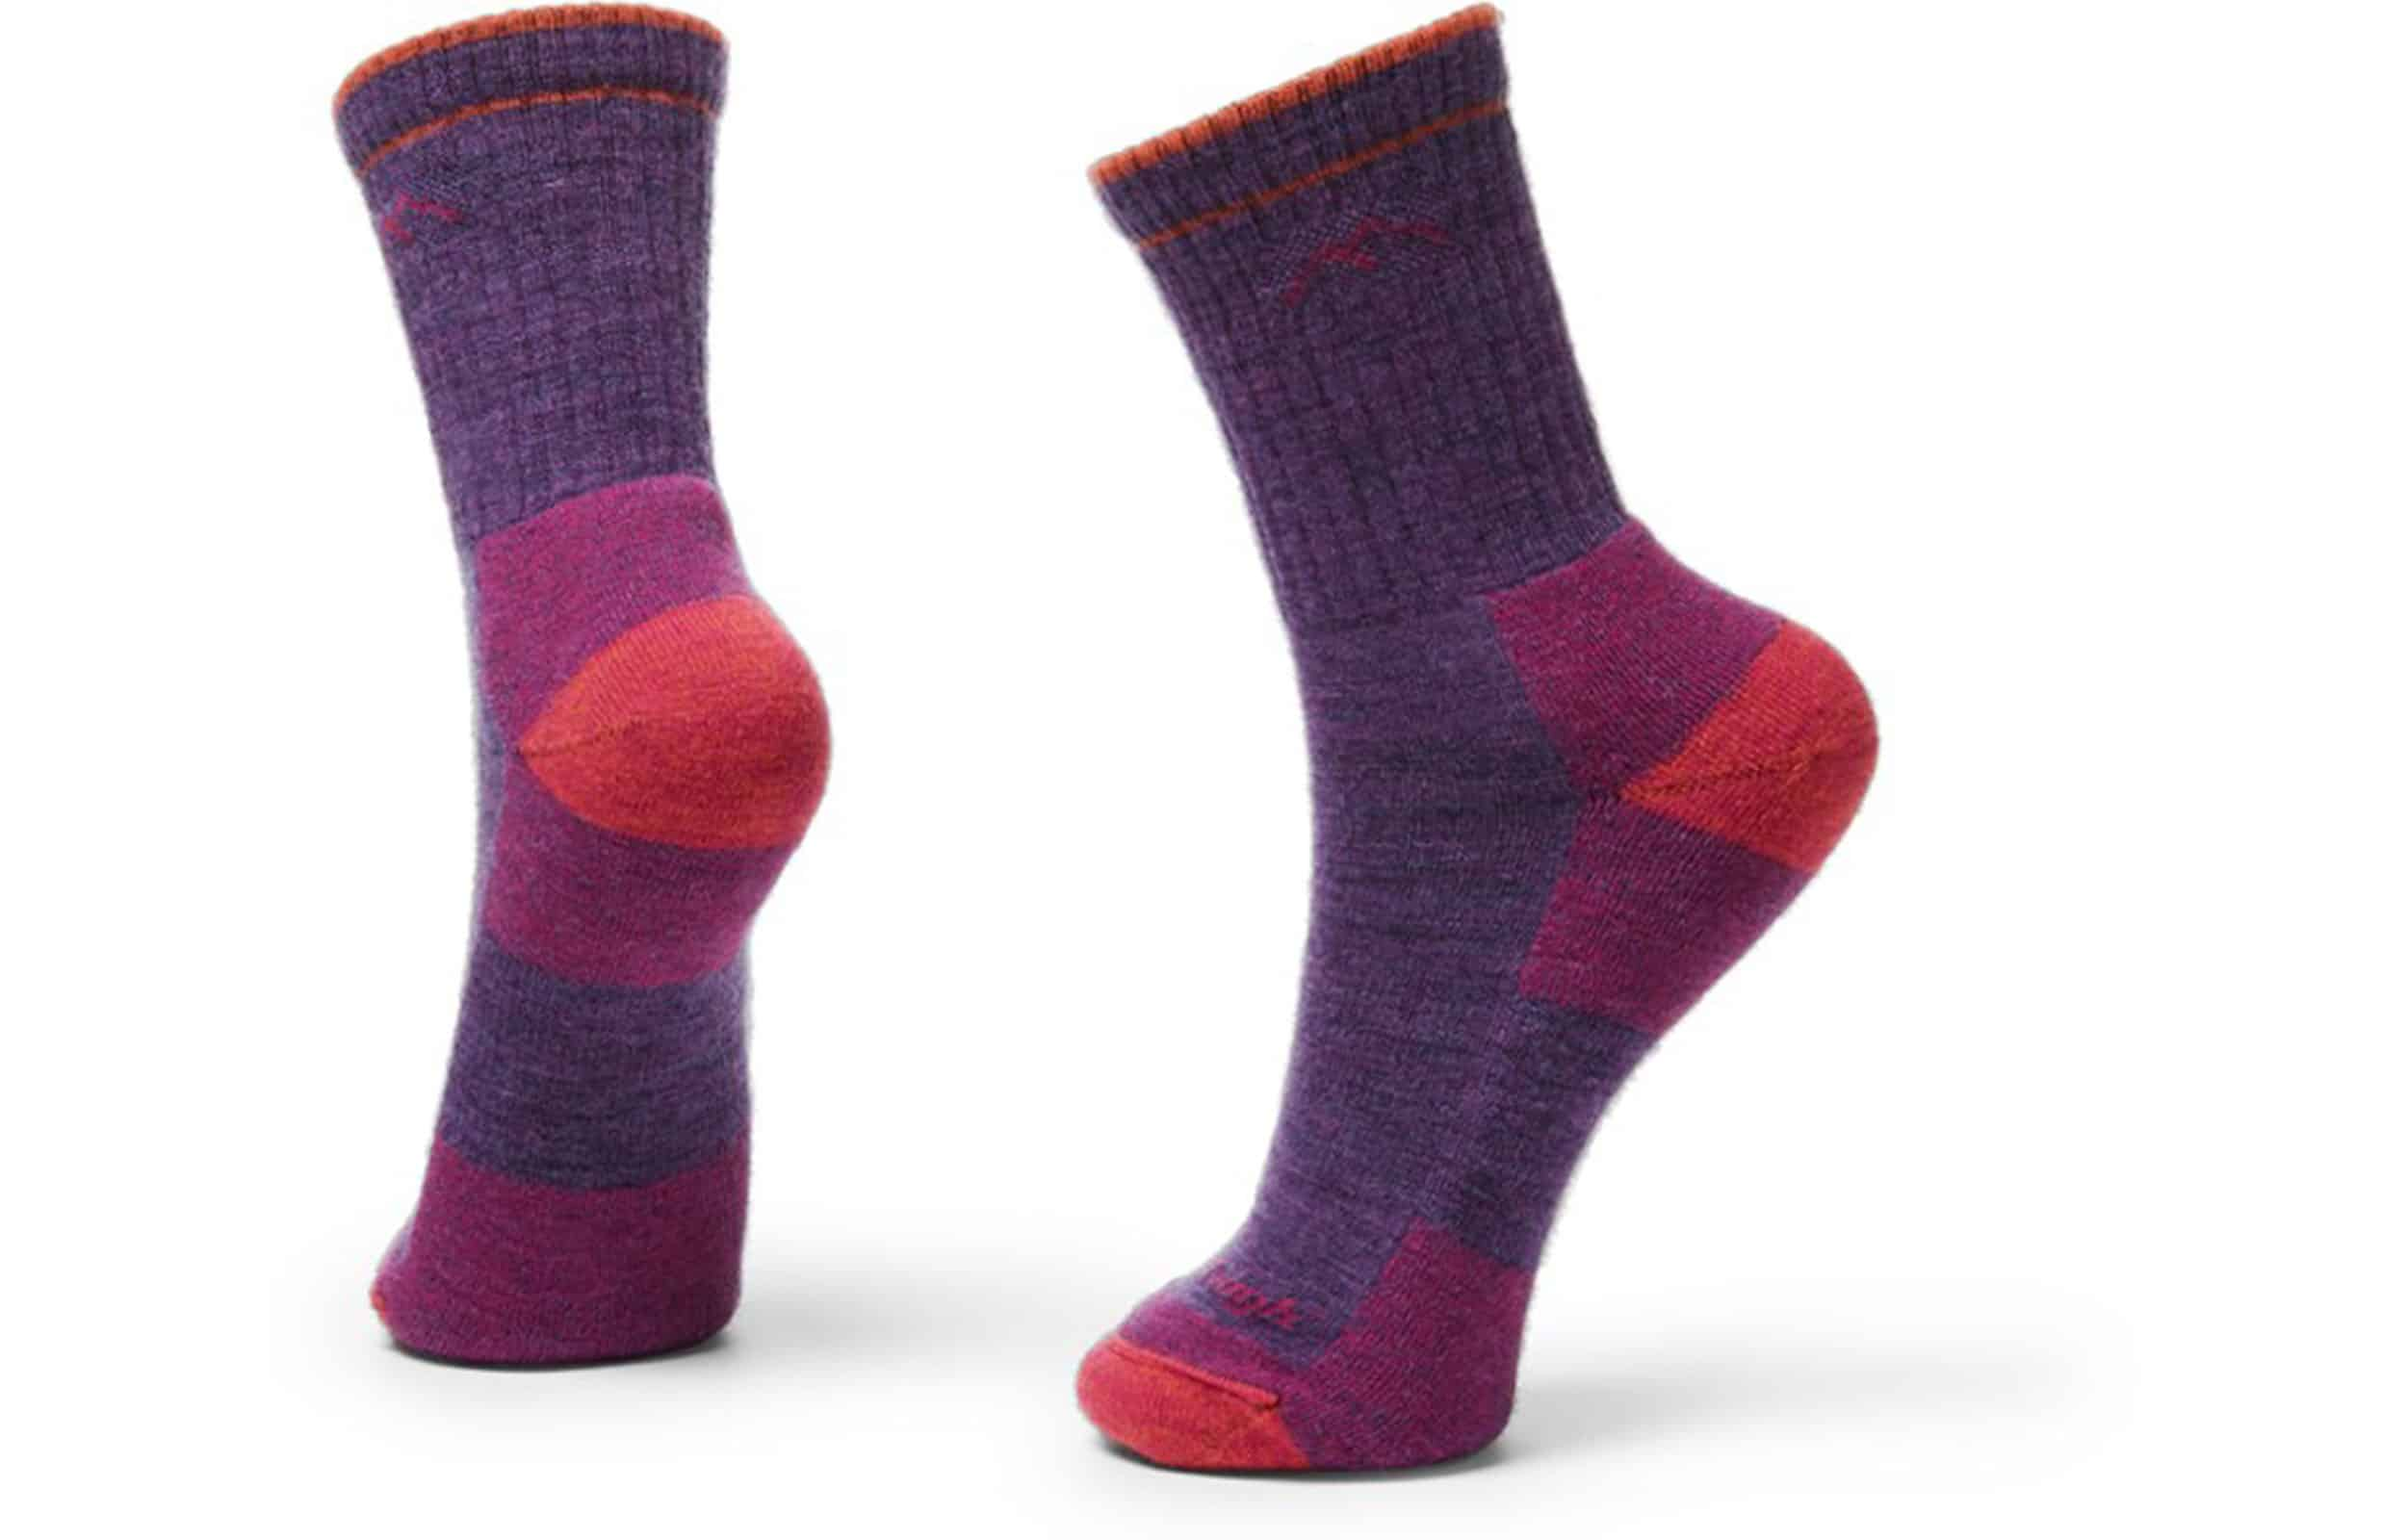 a pair of pink and purple darn tough socks